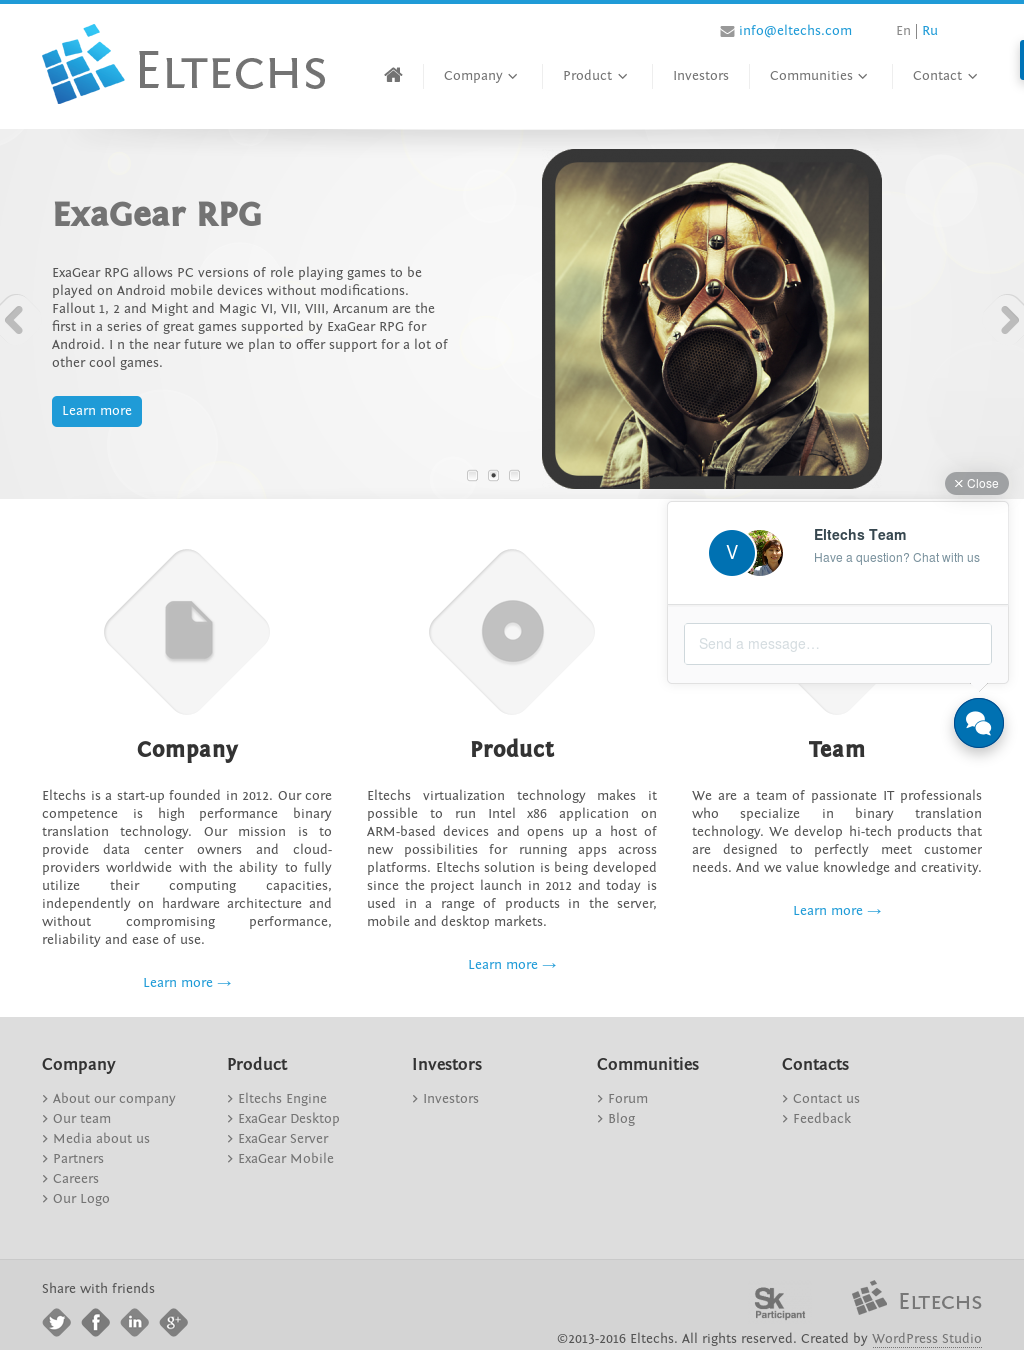 Owler Reports - Eltechs: ExaGear Desktop lets you run x86 apps on a